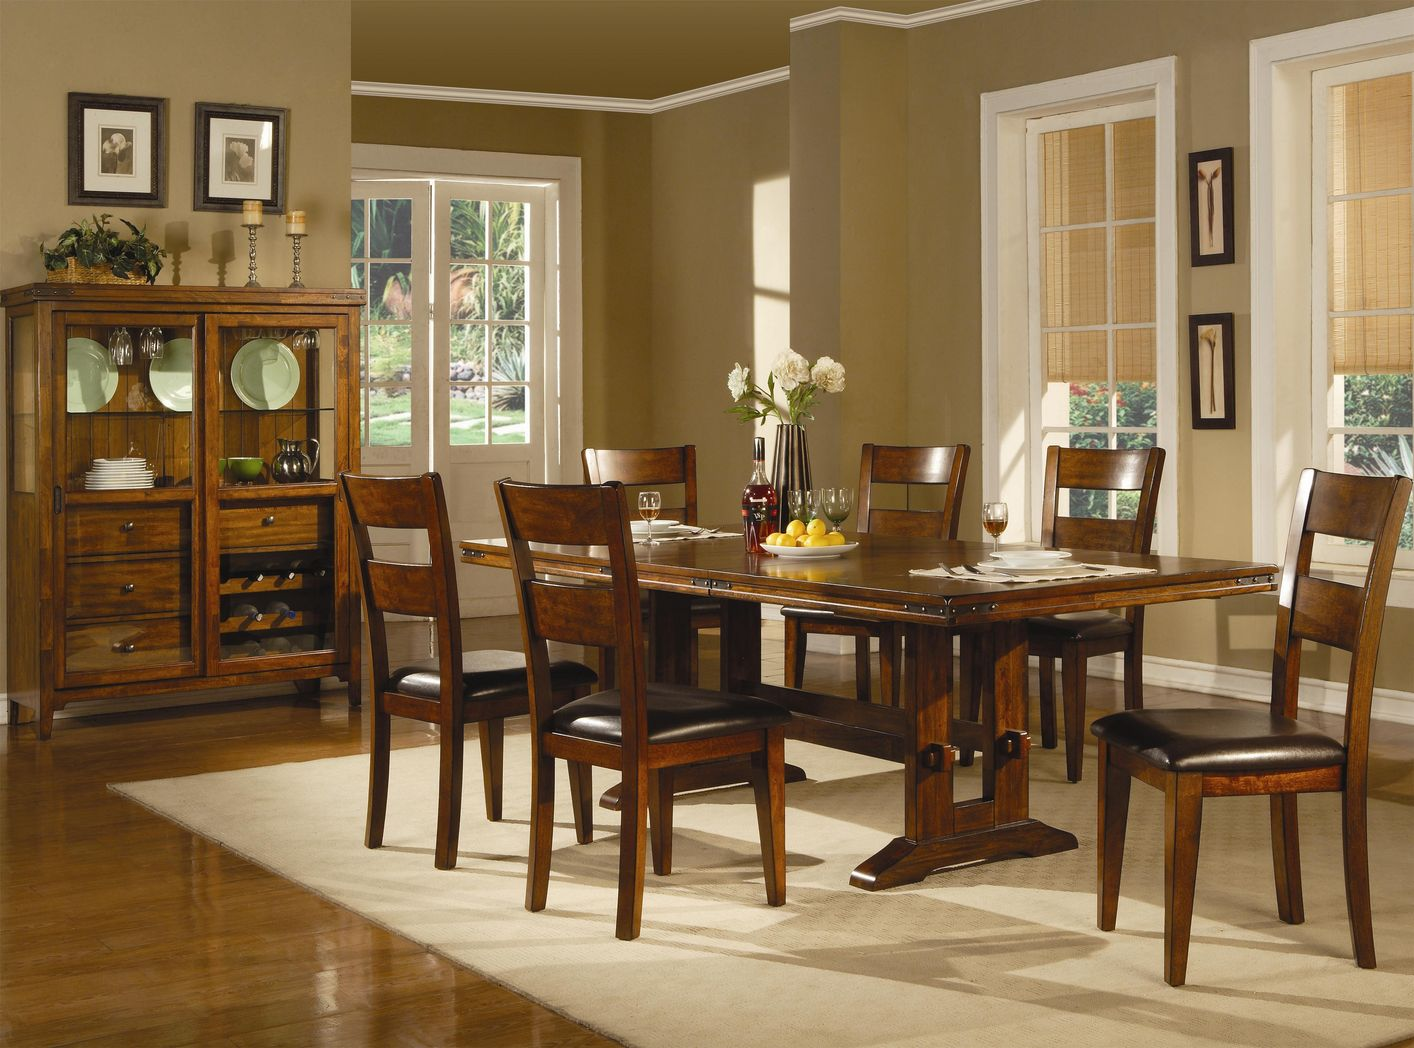 lavista dark oak wood dining table set amazing dark oak dining